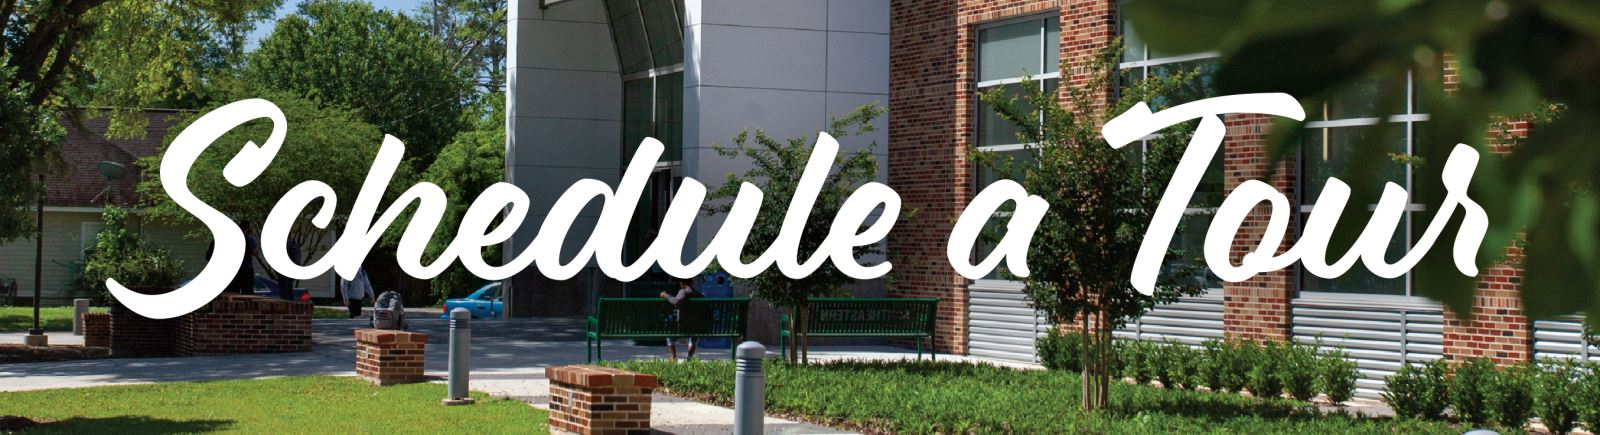 Southeastern Louisiana University - Daily Campus Tours & Events